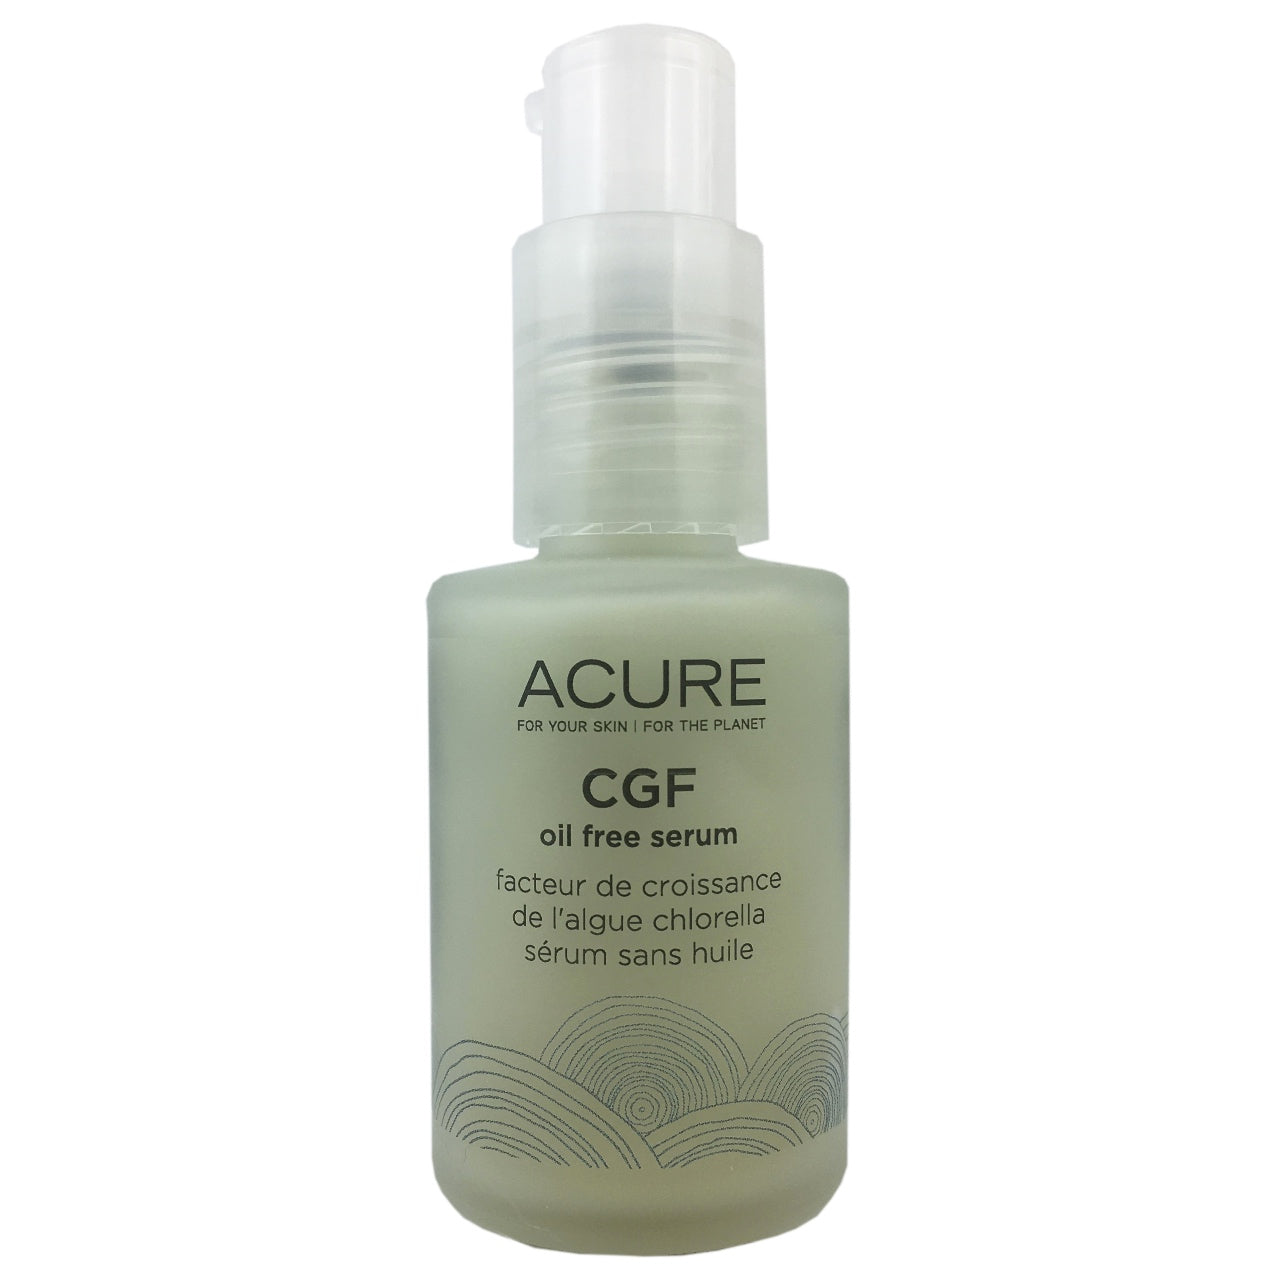 Acure CGF Oil Free Repair Serum